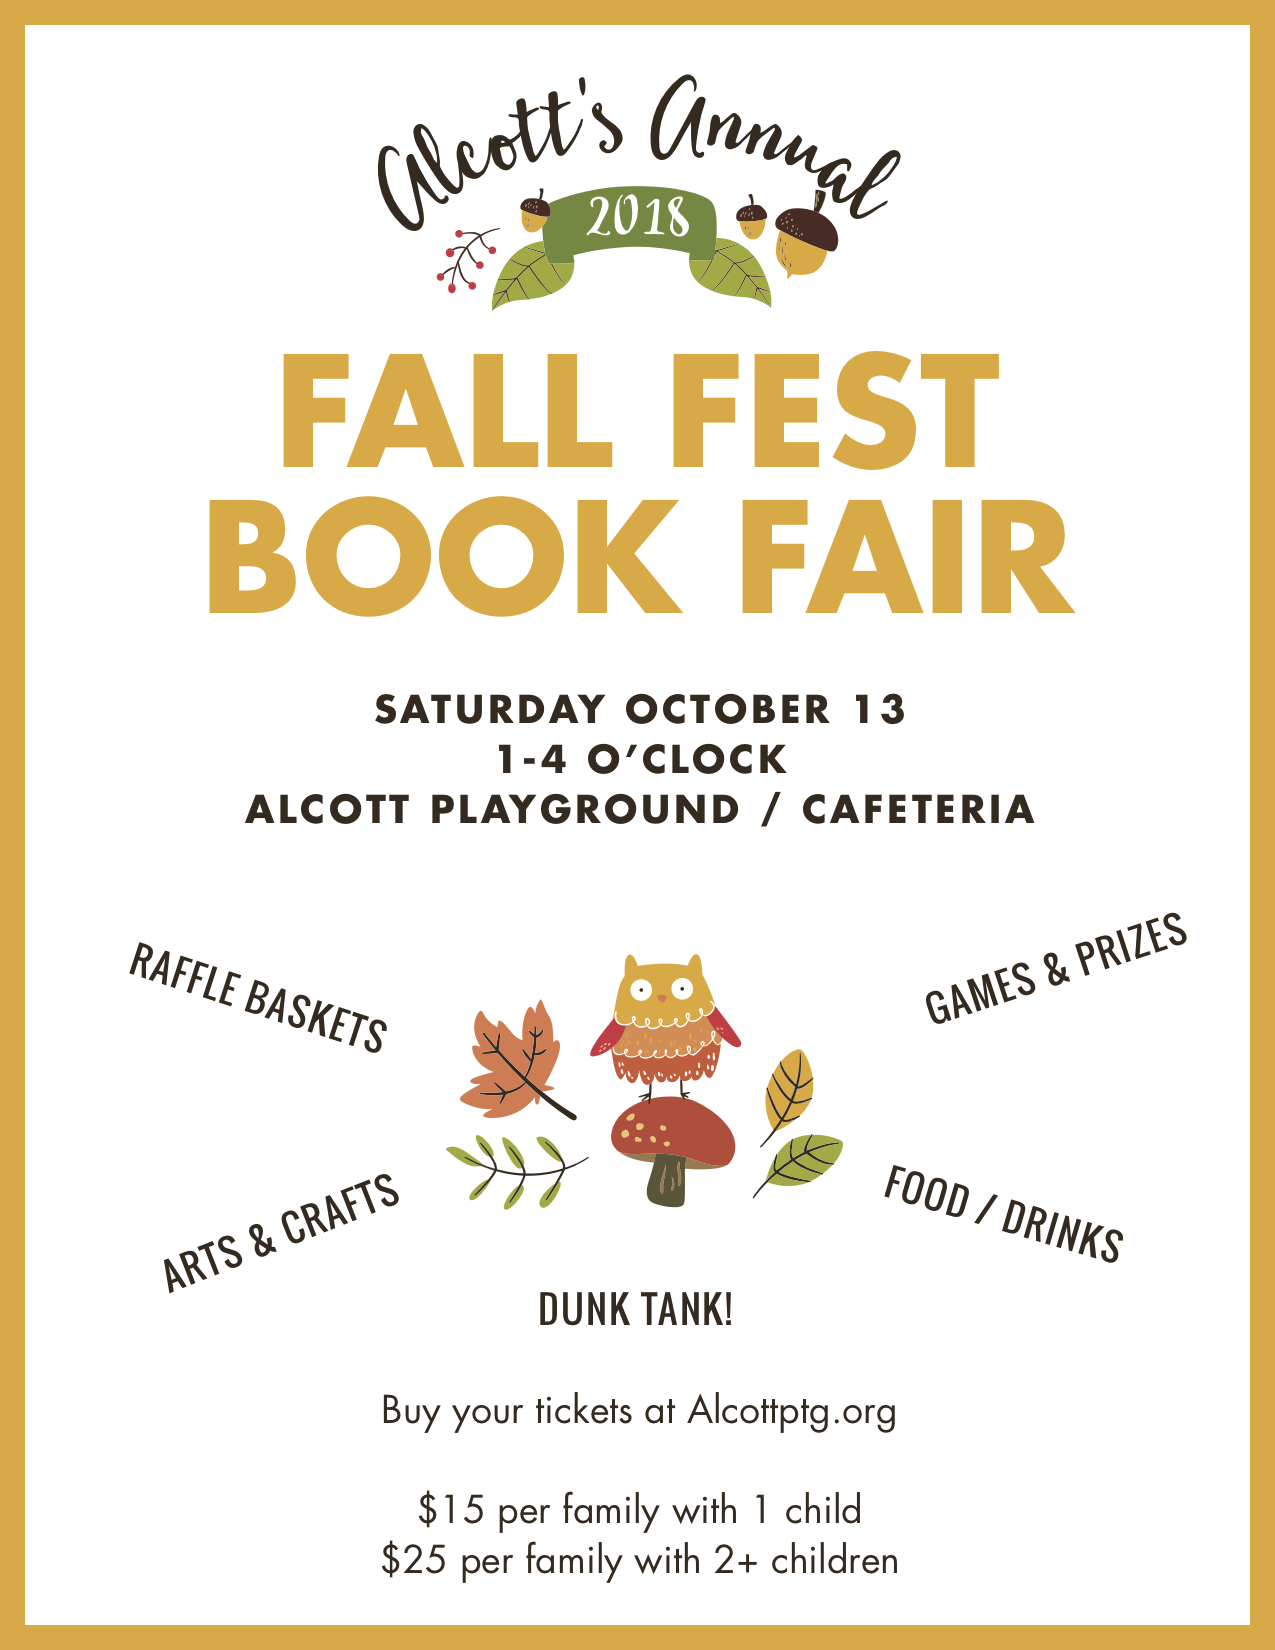 Alcott Fall Fest - Remember to buy your Fall Festival tickets today and sign up to volunteer! Saturday, October 13, 1 - 4 pm at Alcott School and PlaygroundThe Alcott Fall Fest is just a few days away on Saturday October 13 from 1 - 4 pm - now is a great time to buy your ticket and sign up for a volunteer spot! Help is still needed in many areas including set up before the event, selling raffle tickets during the event, and clean up. For those parents feeling brave, you might sign up for 30 minutes in the dunk tank- costumes optional but encouraged!Tickets can be purchased now via below or send in a check written out to Alcott PTG with Fall Fest written in the memo section.